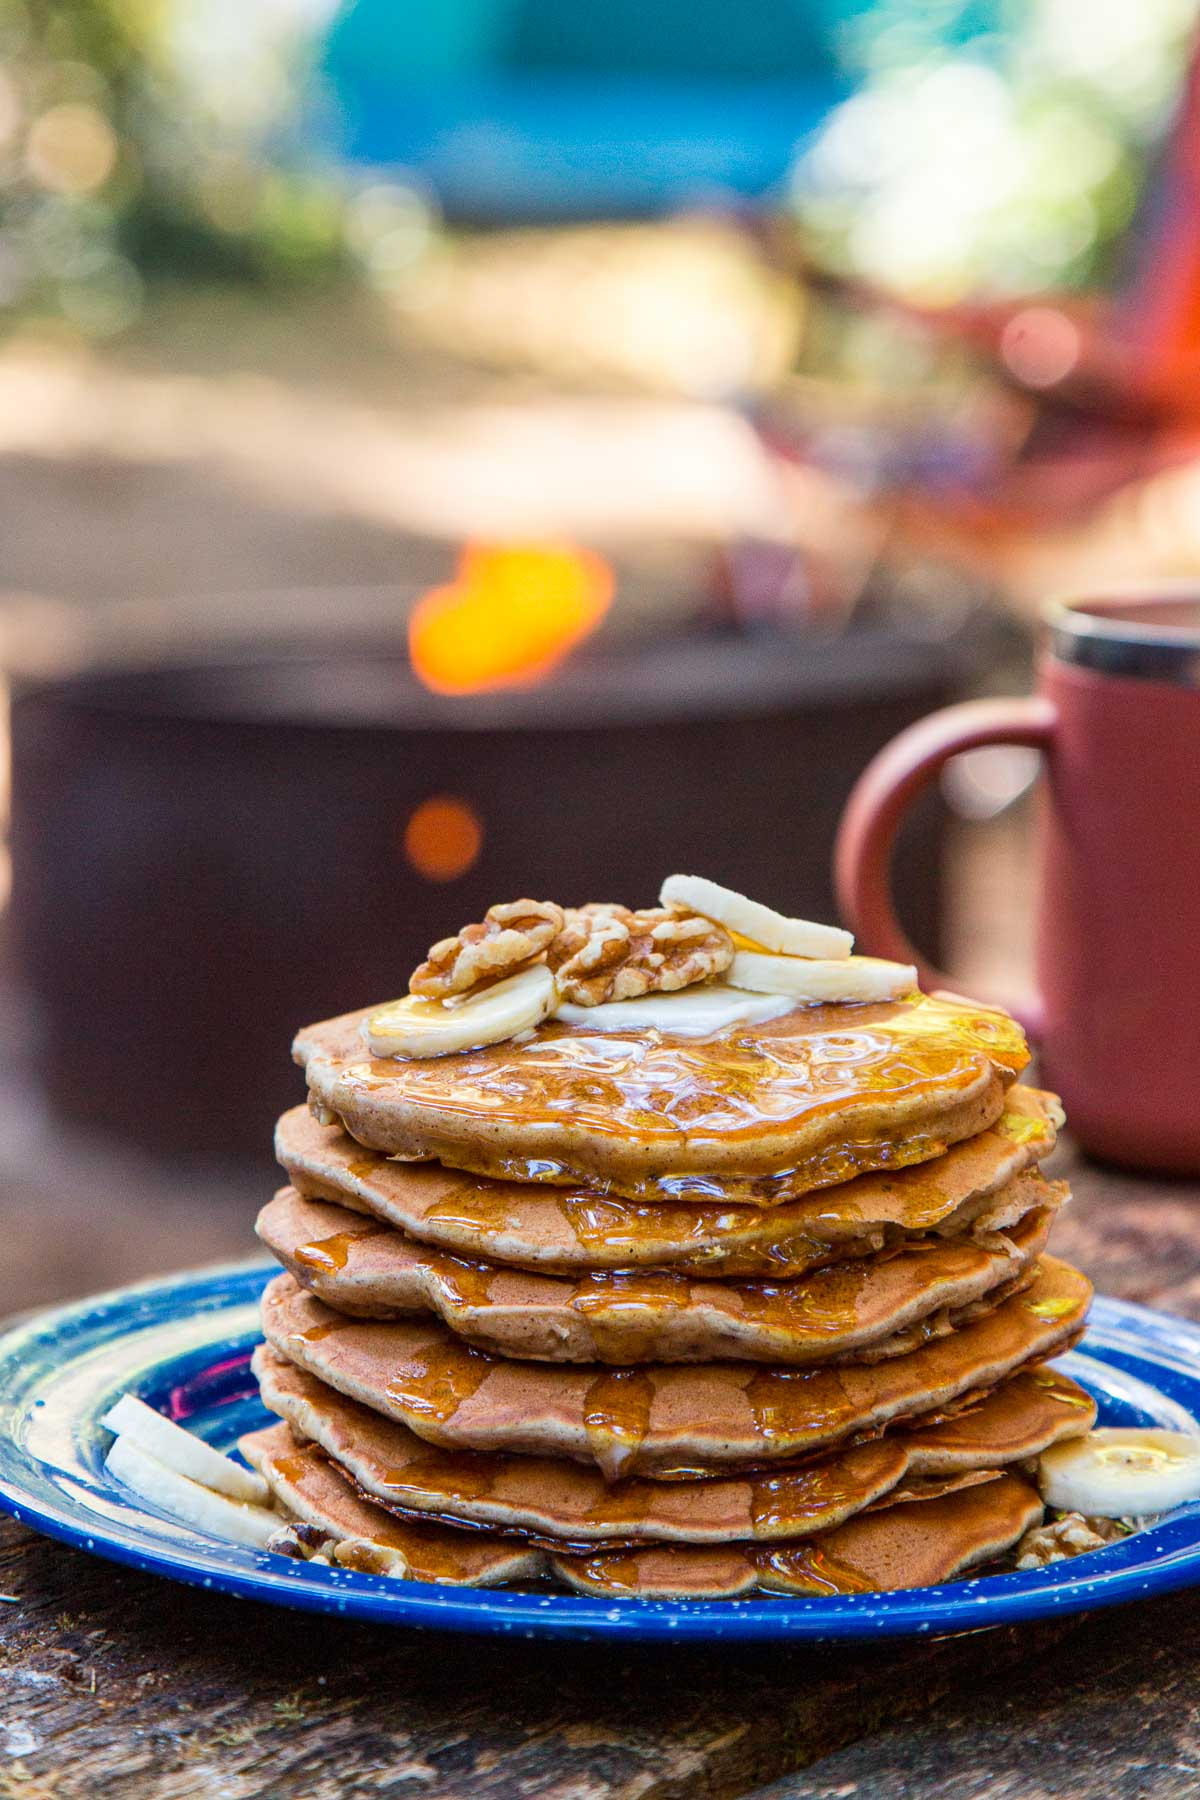 A stack of pancakes on a blue plate, topped with slices of bananas and walnuts and a camping scene in the background.